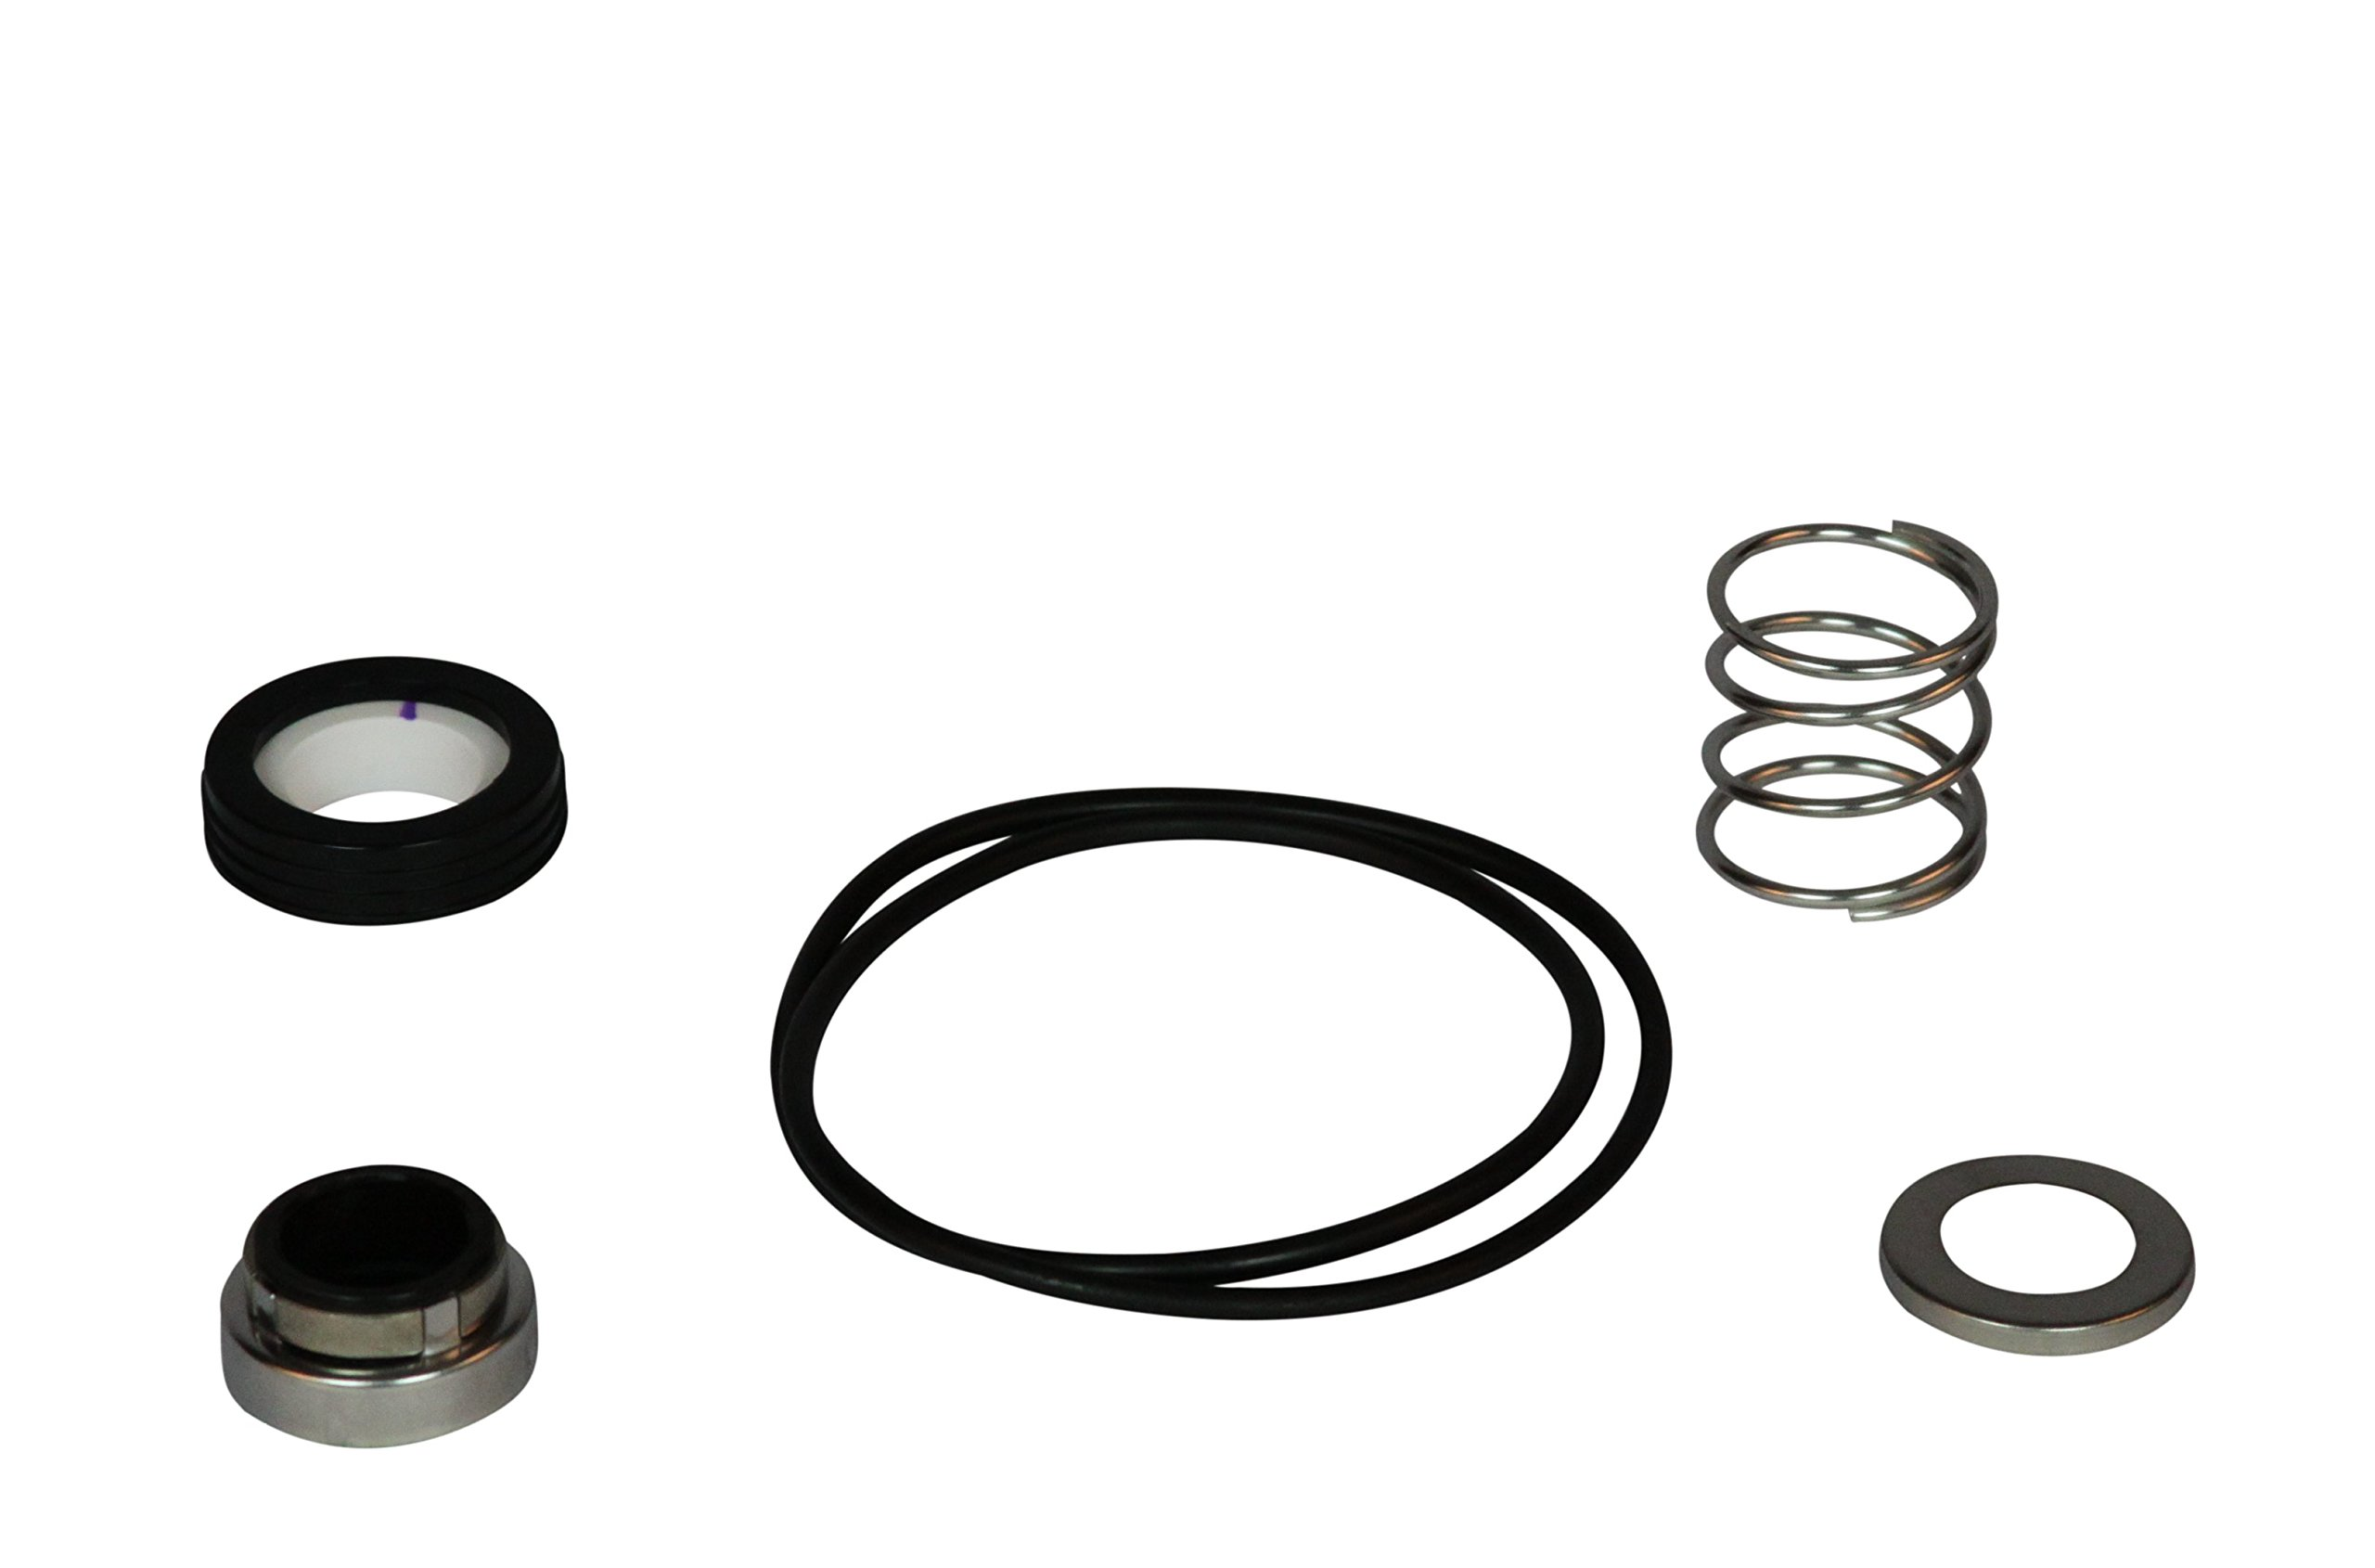 Wayne 64048-WYN1 Shaft Seal and Gasket for Pls, Black